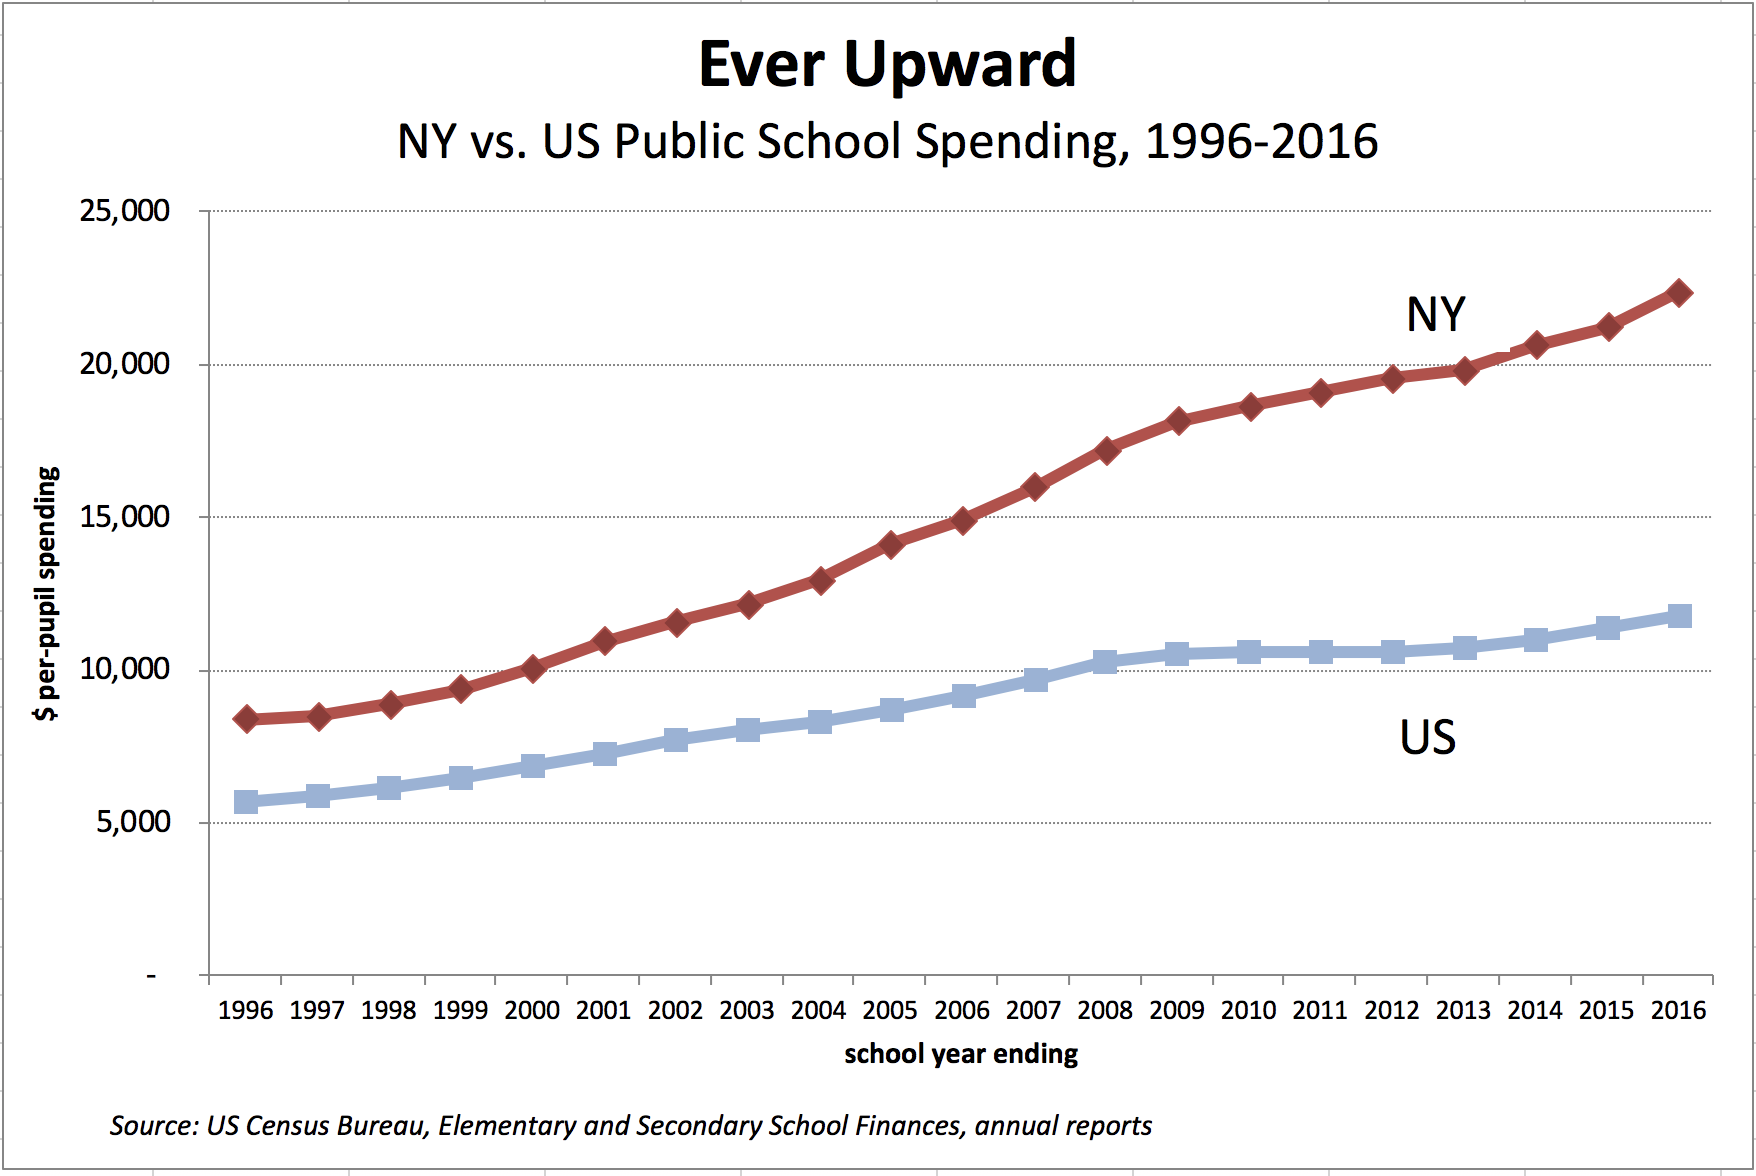 Us Census Figures Public >> Ny School Spending Tops 22k Per Pupil Empire Center For Public Policy